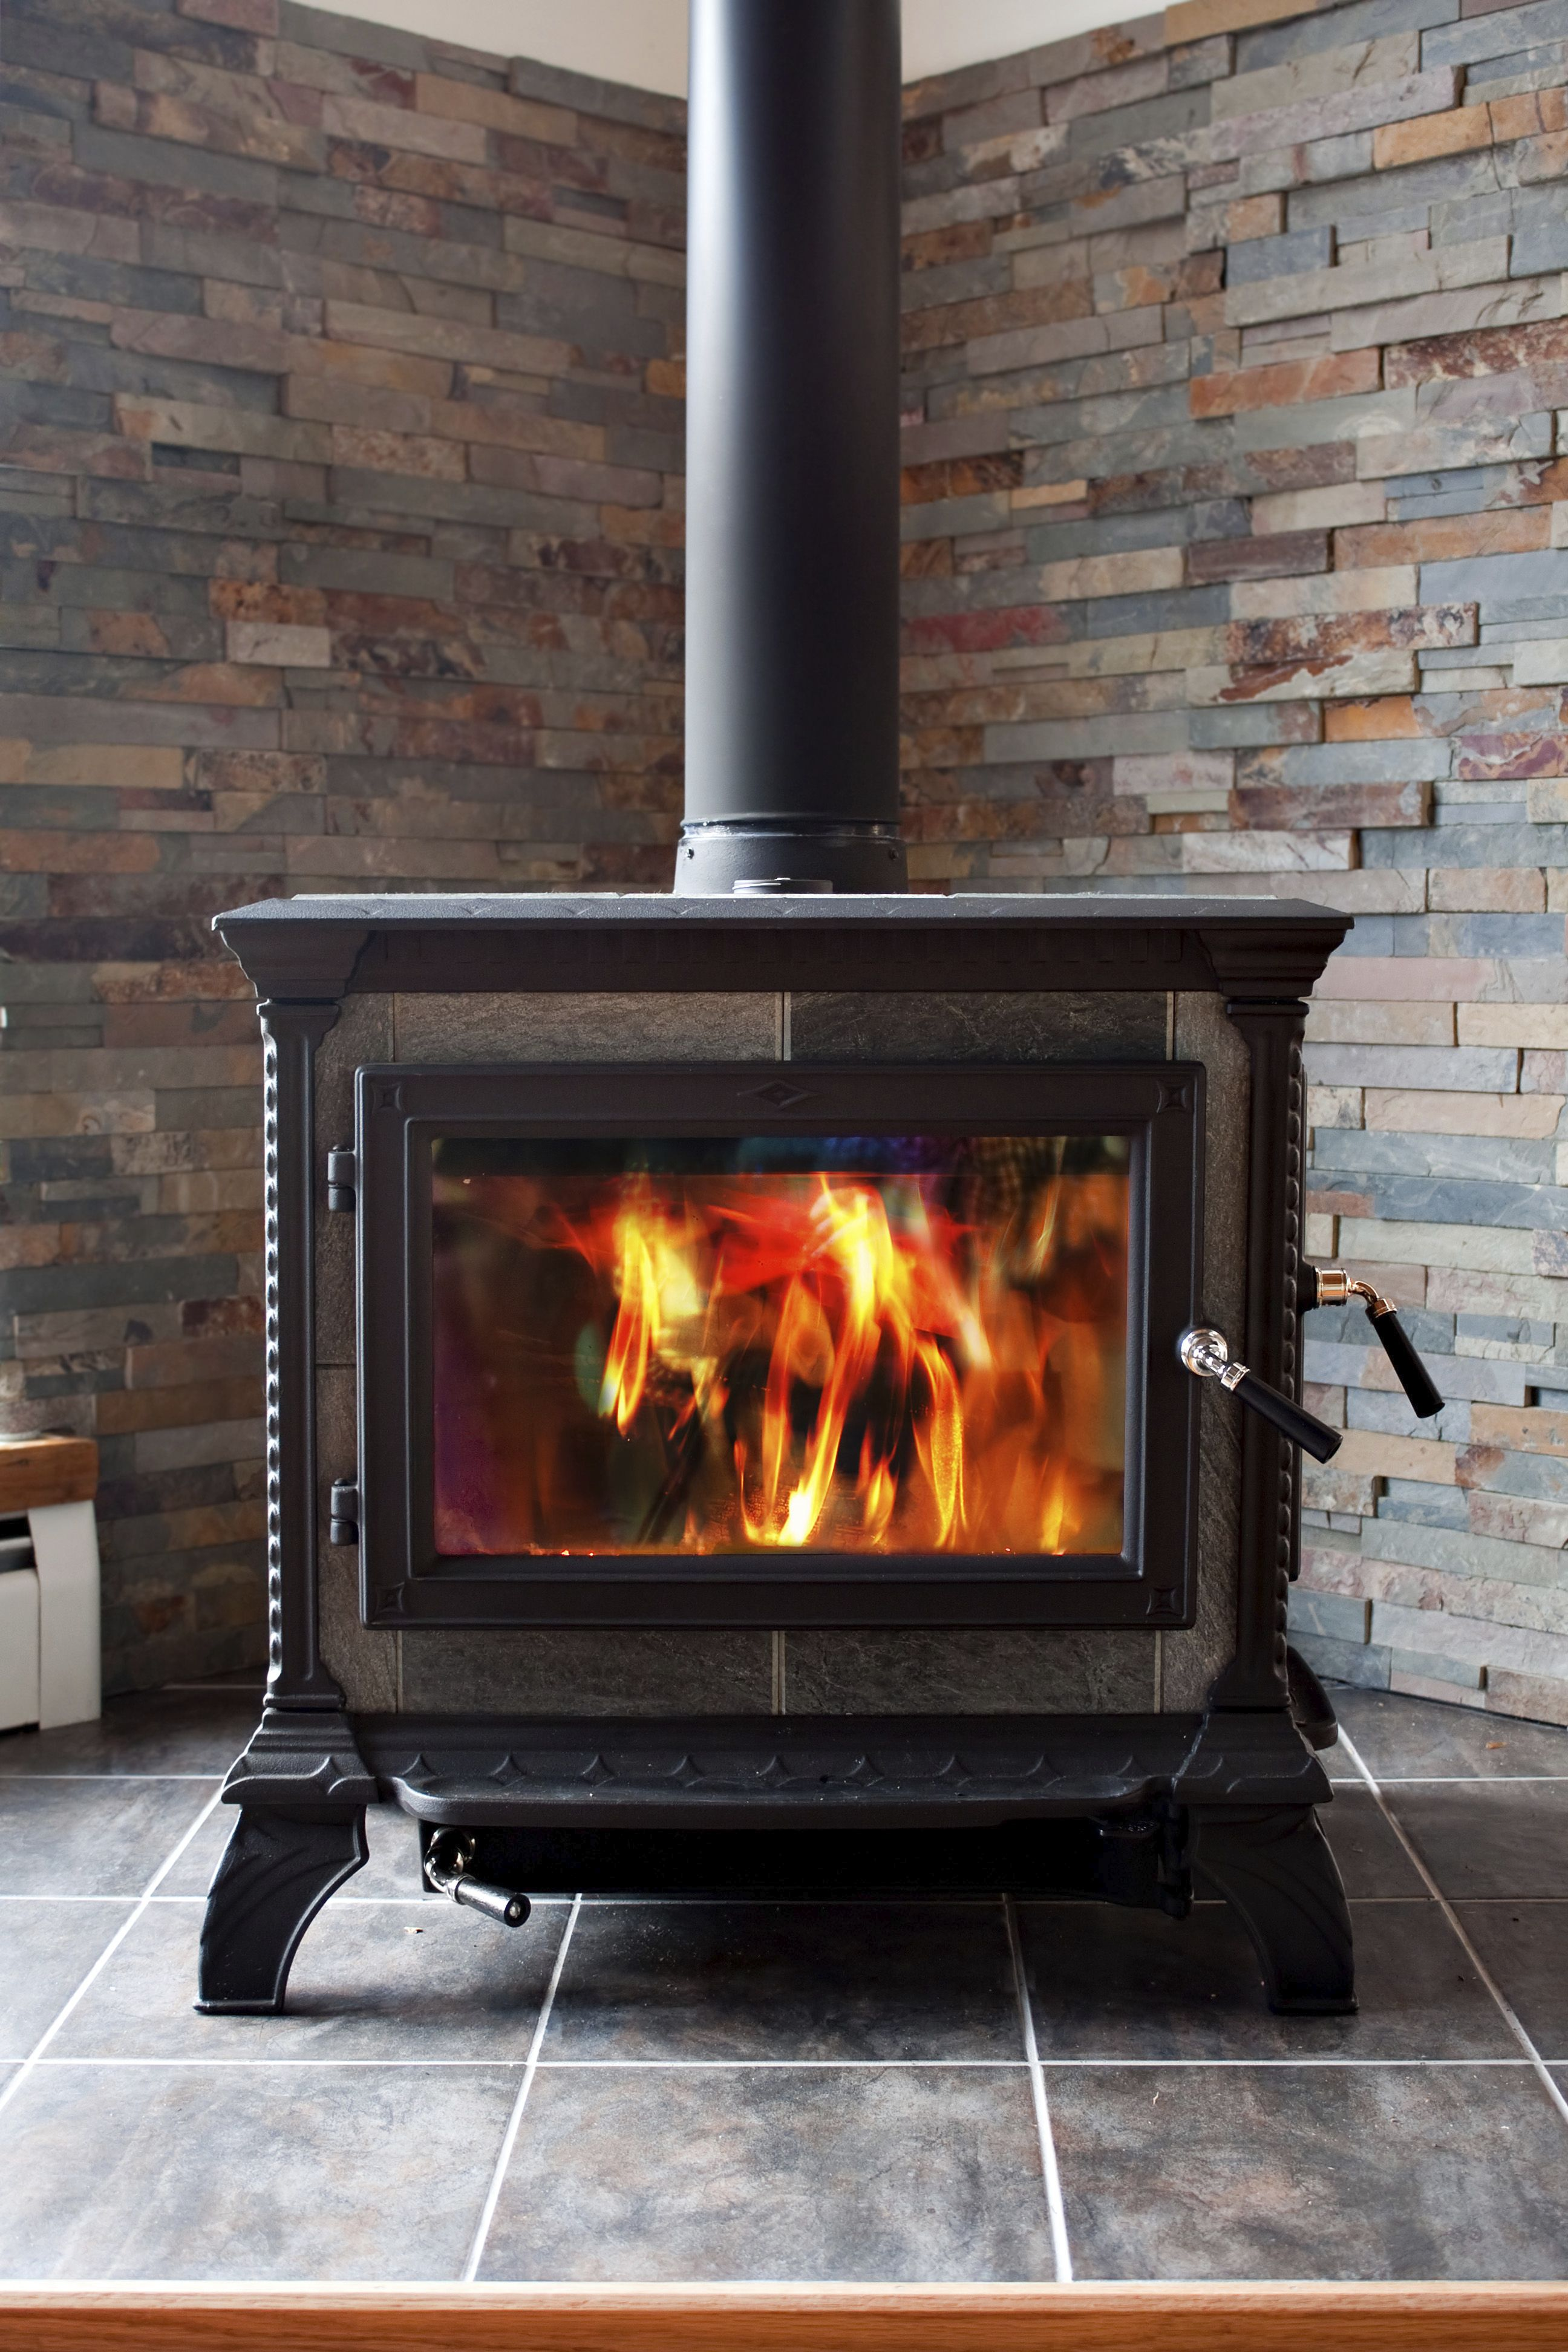 You Can Use Irish Fire Logs Anywhere You Would Burn Wood Including Wood Burning Stoves Wood Stove Surround Wood Stove Fireplace Wood Stove